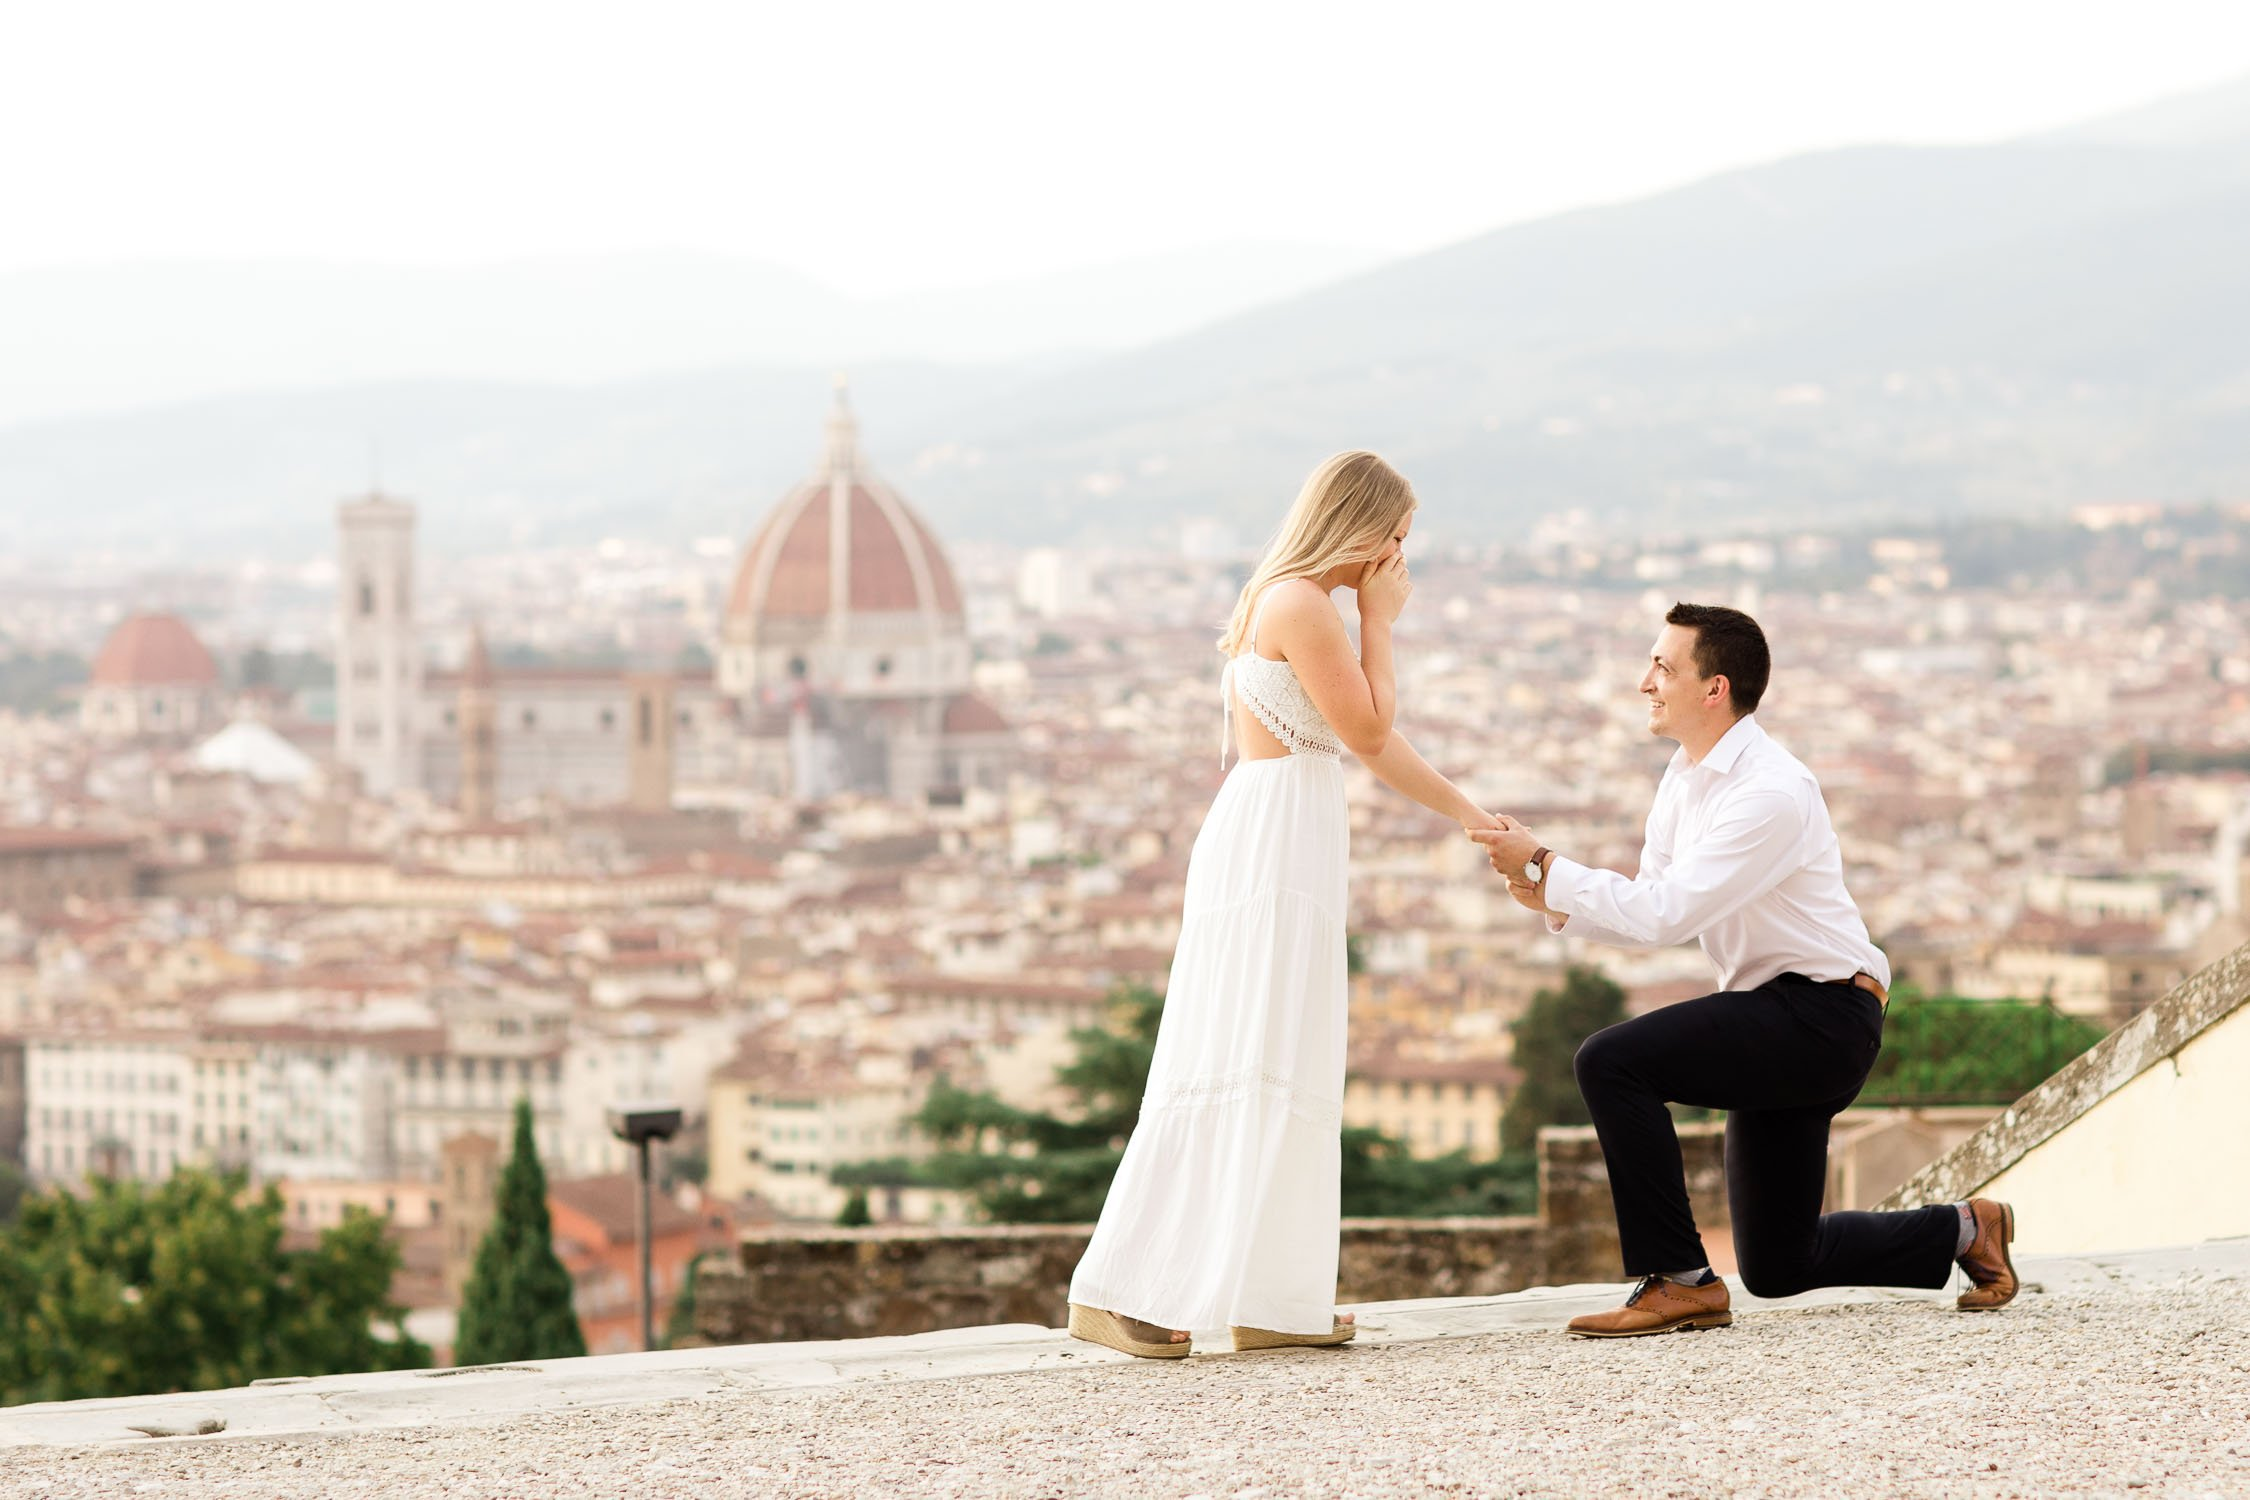 Surprise proposal picture at San Miniato al Monte - Piazzale Michelangelo Florence